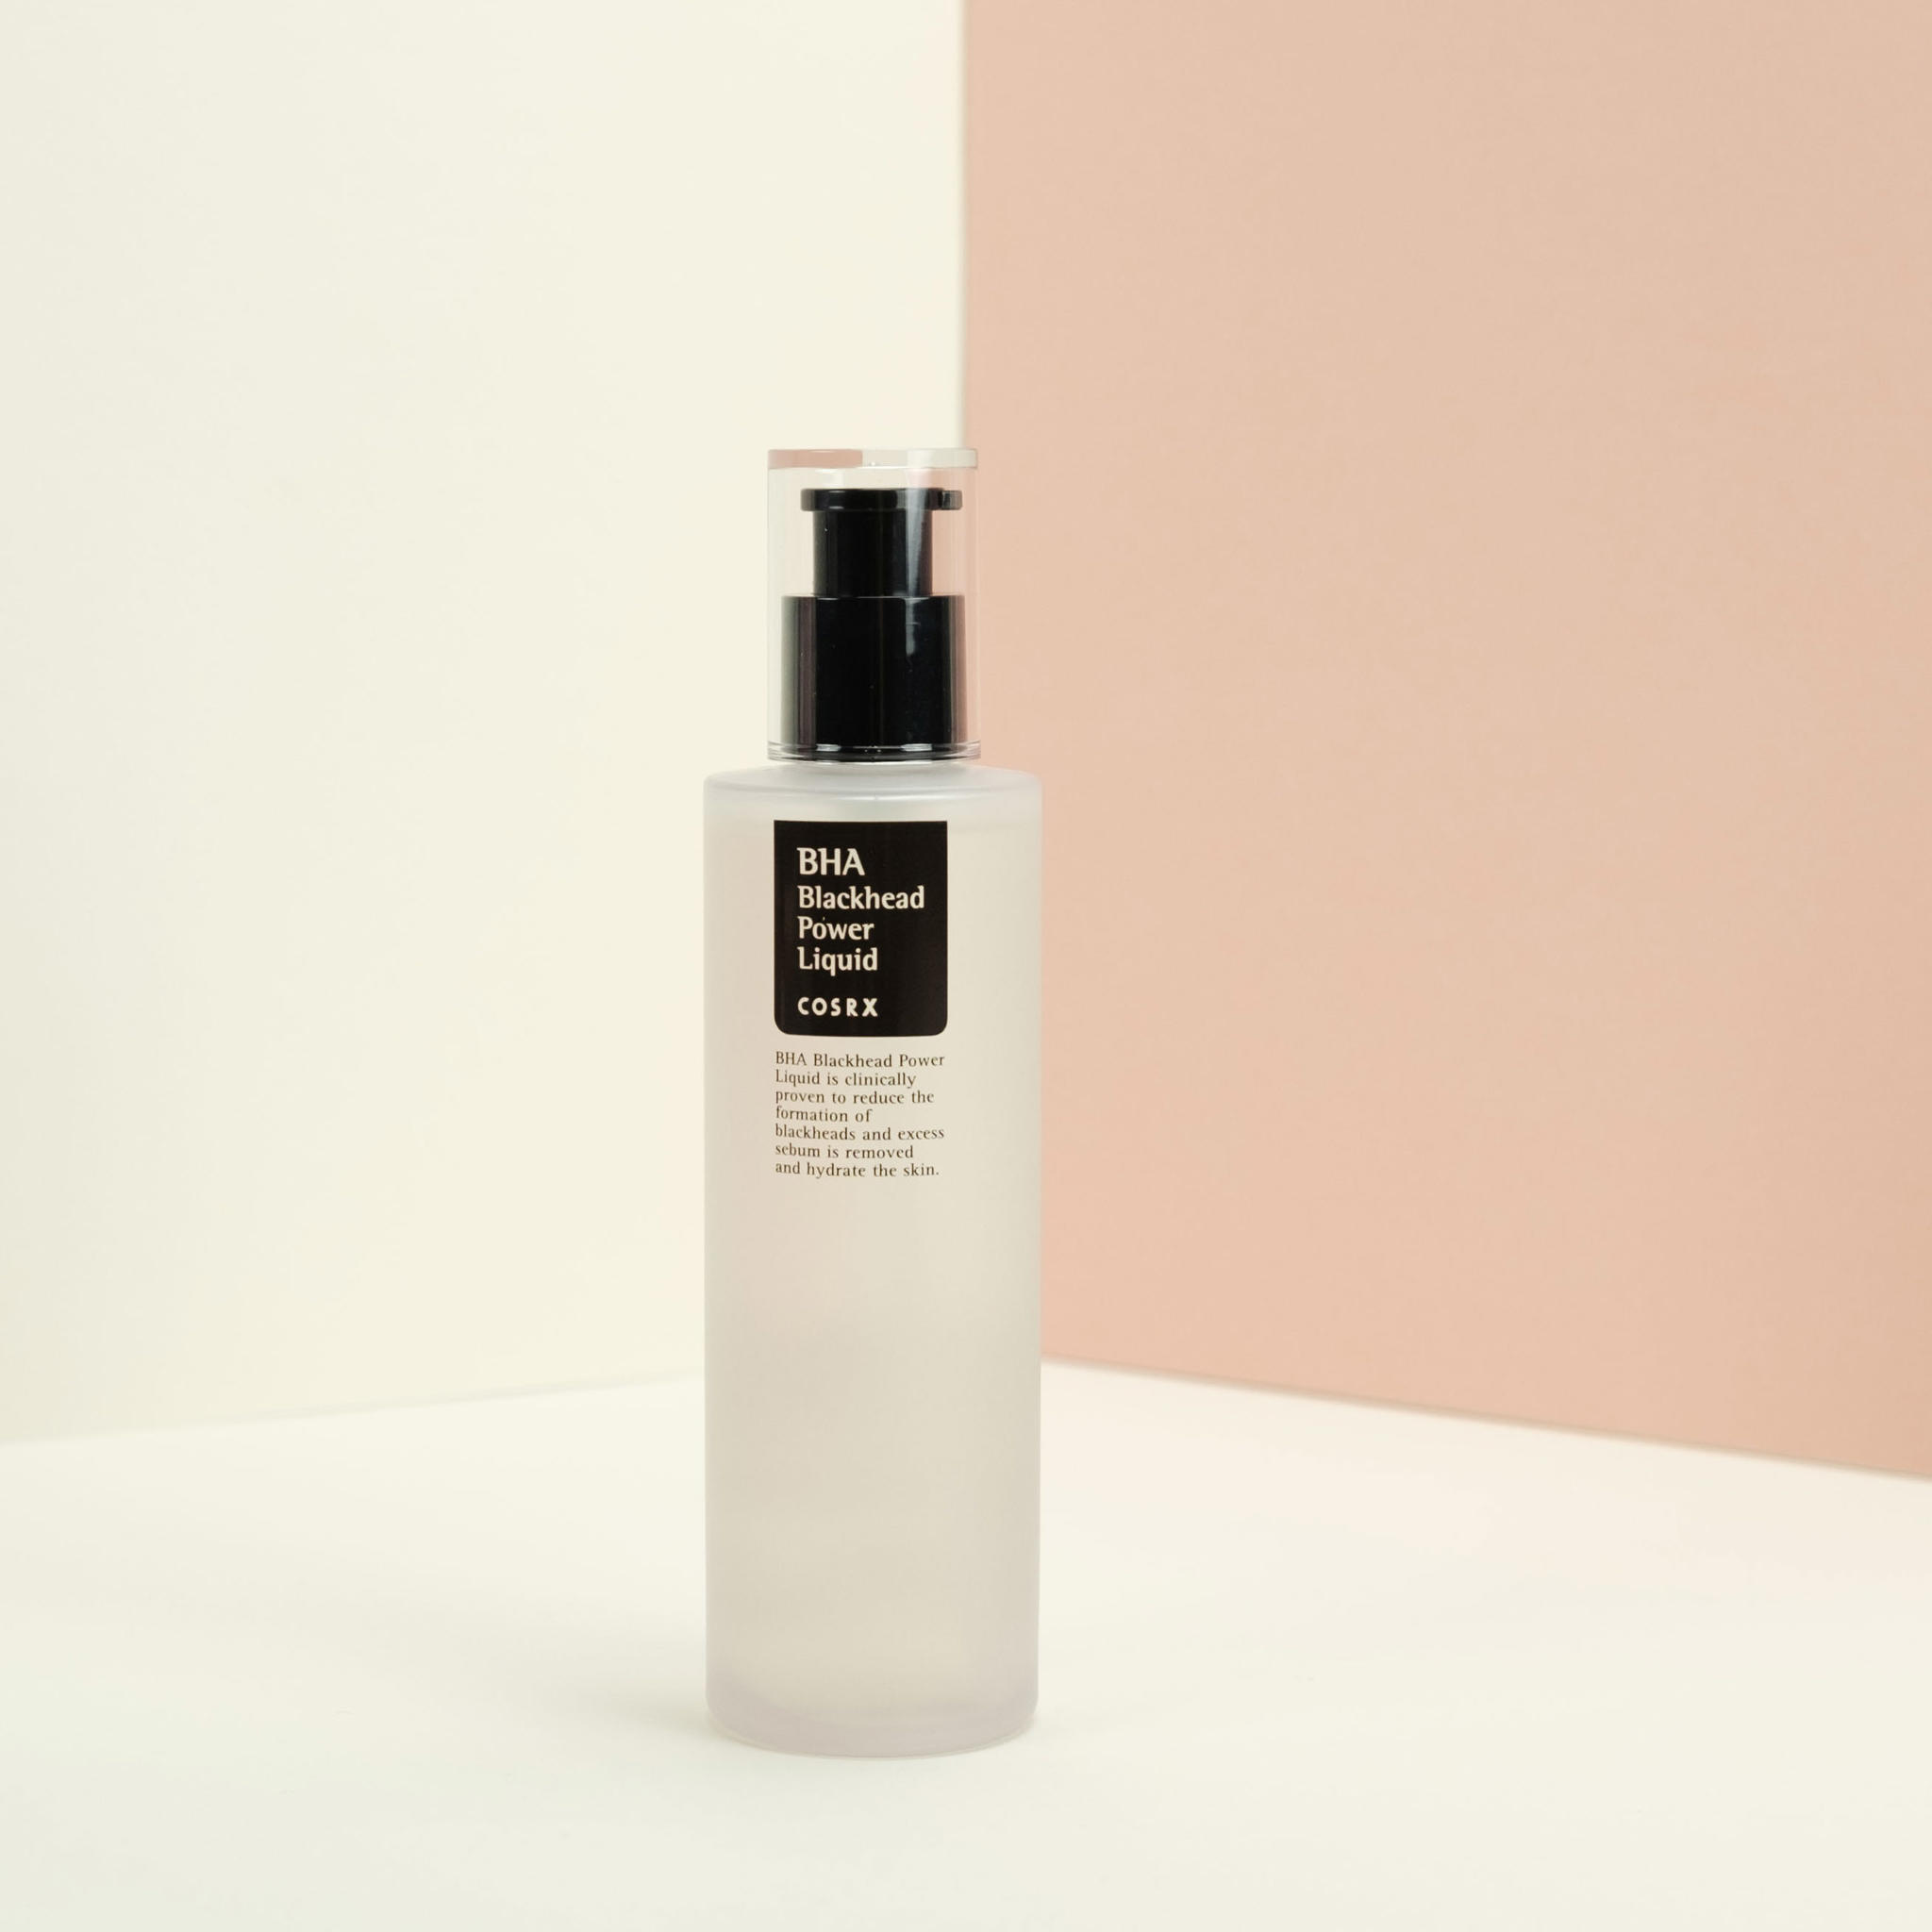 COSRX_BHA blackhead power liquid